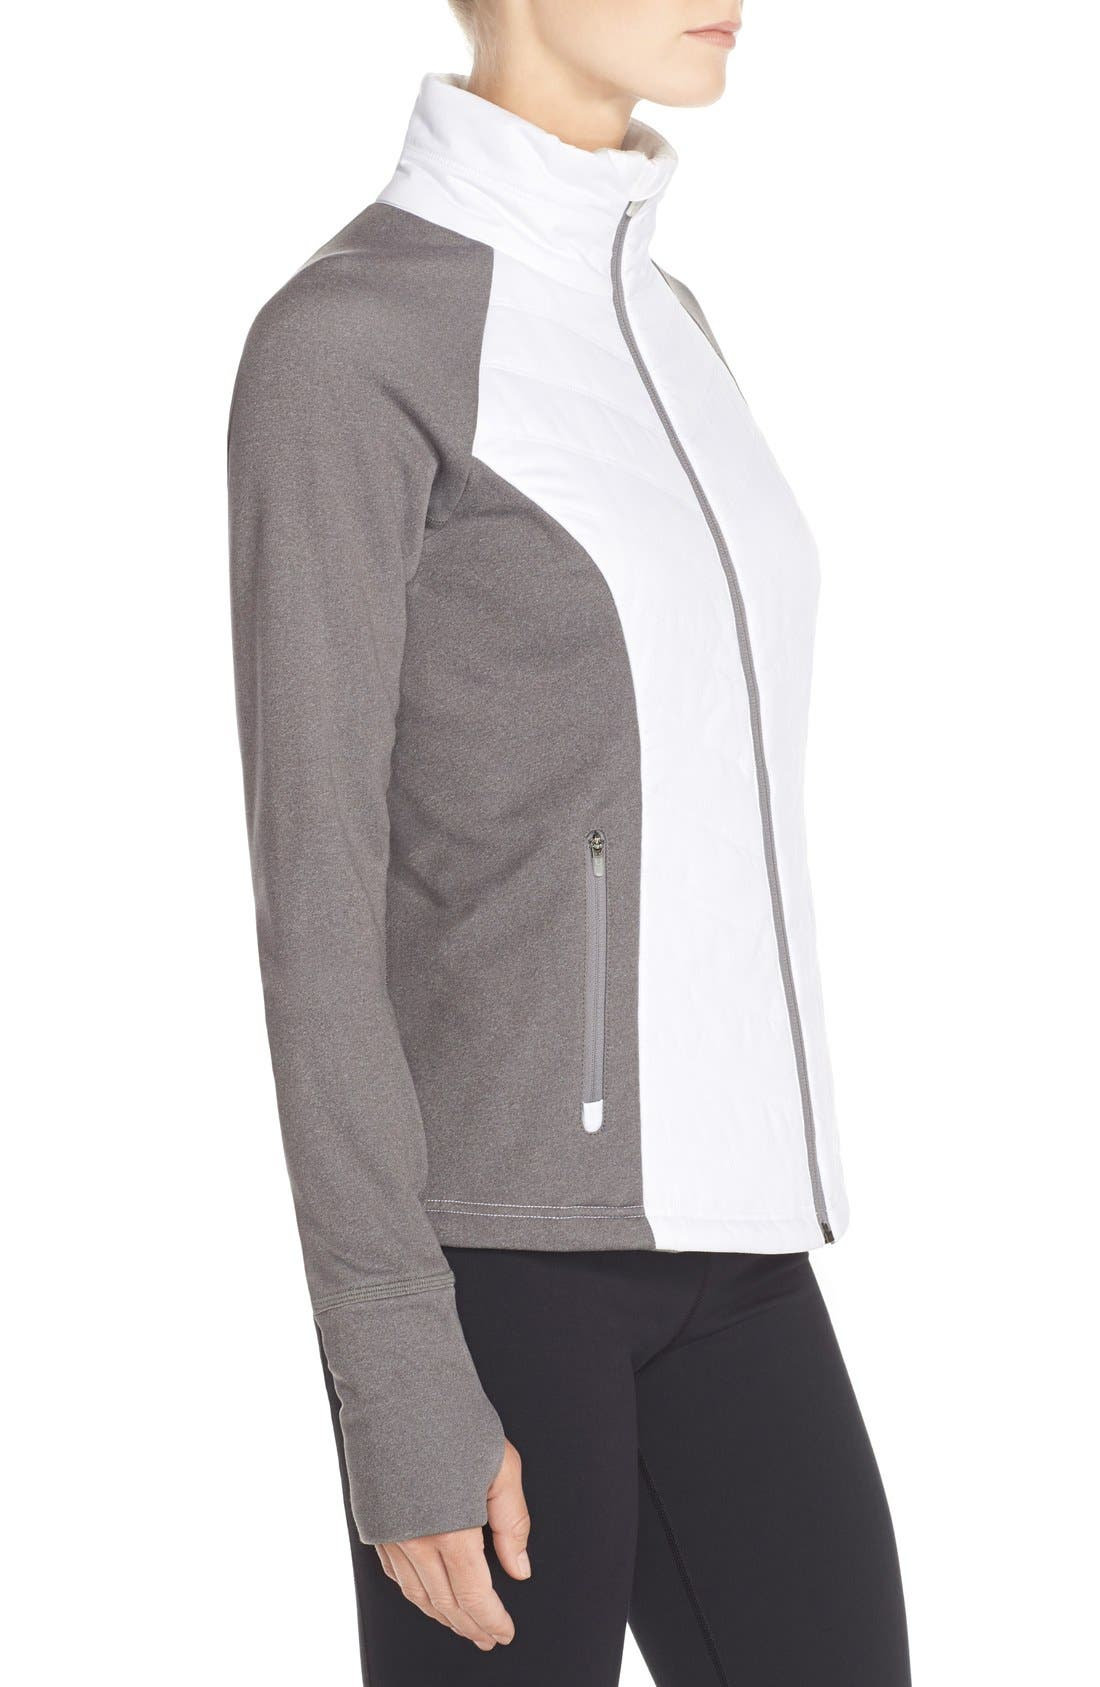 Zelfusion Reflective Quilted Jacket,                             Alternate thumbnail 58, color,